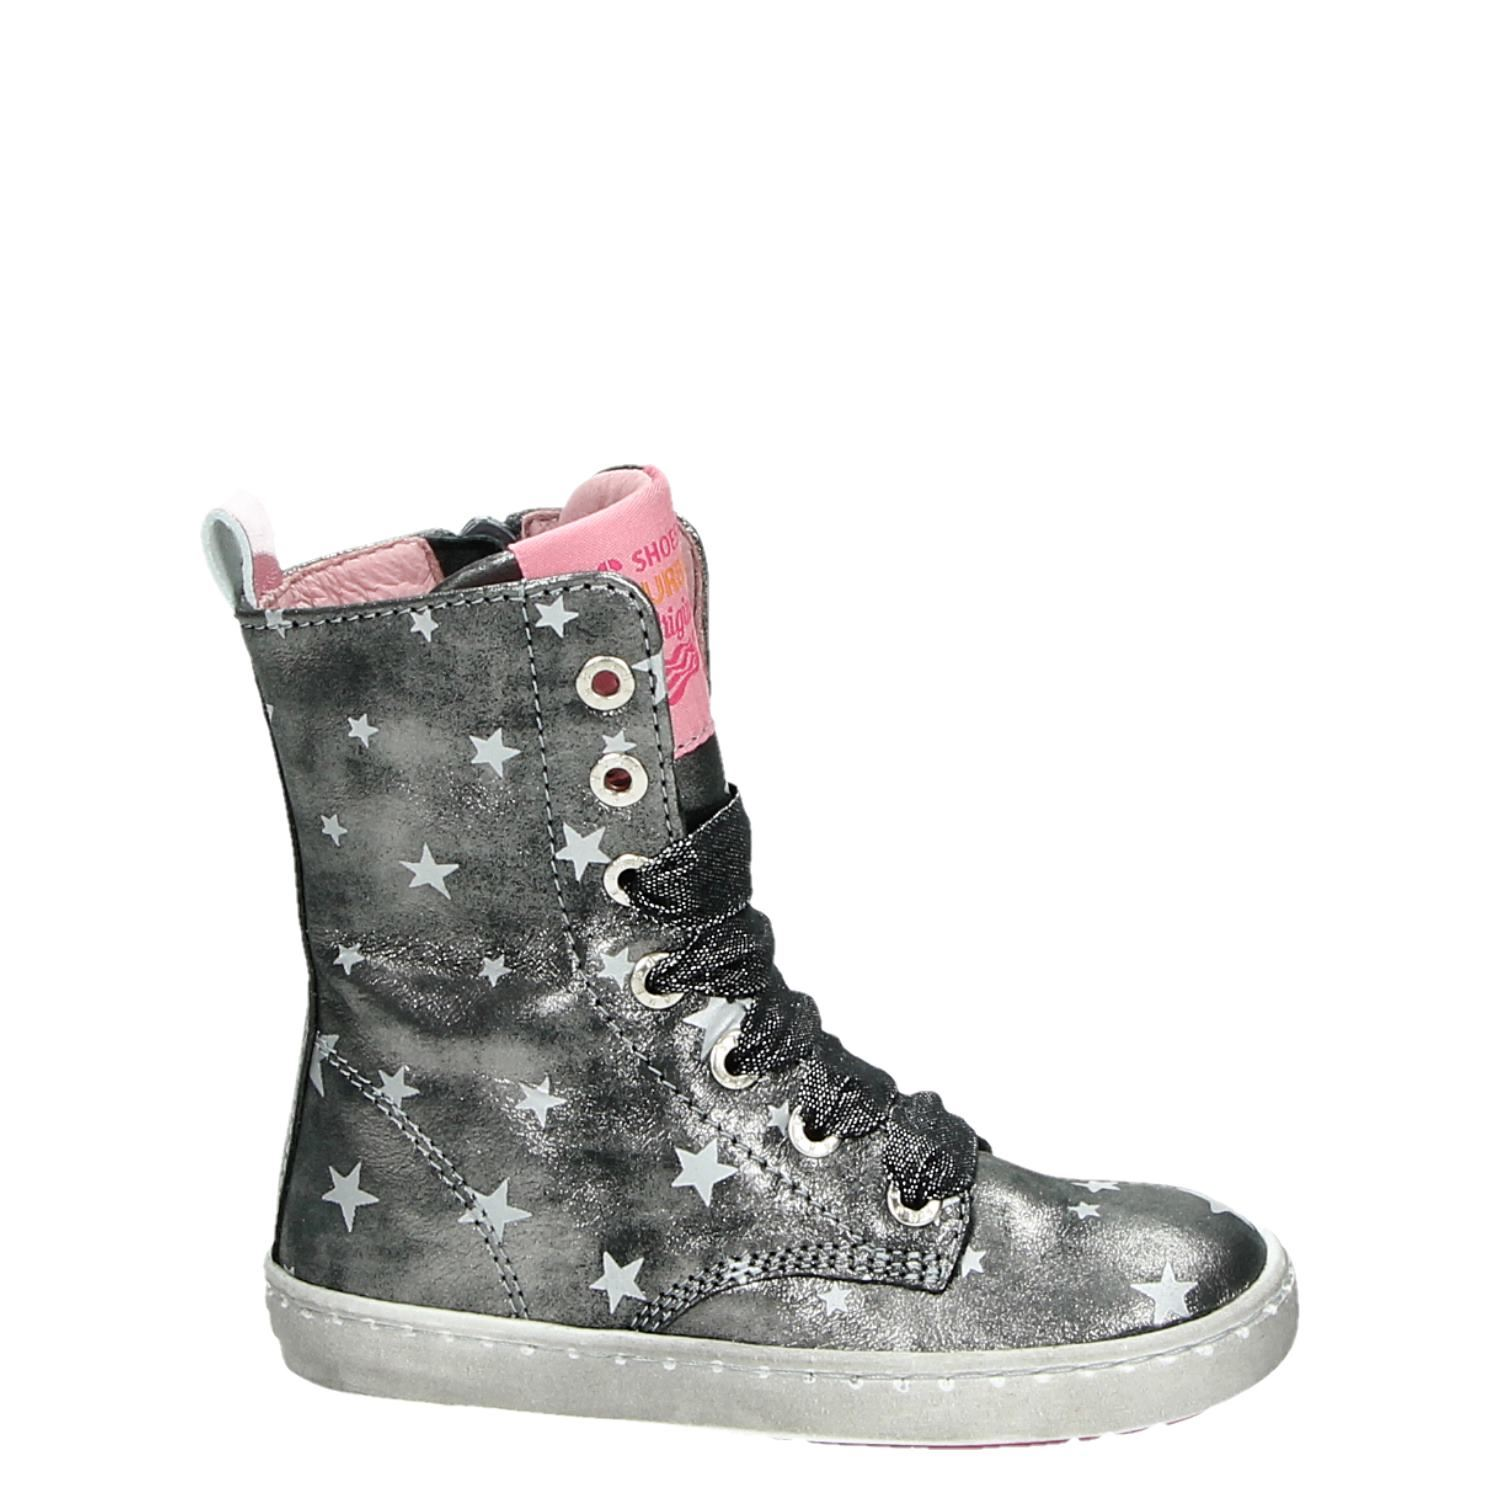 Shoesme - Veterbootie - Taille 25 - Argent uYHpaWi